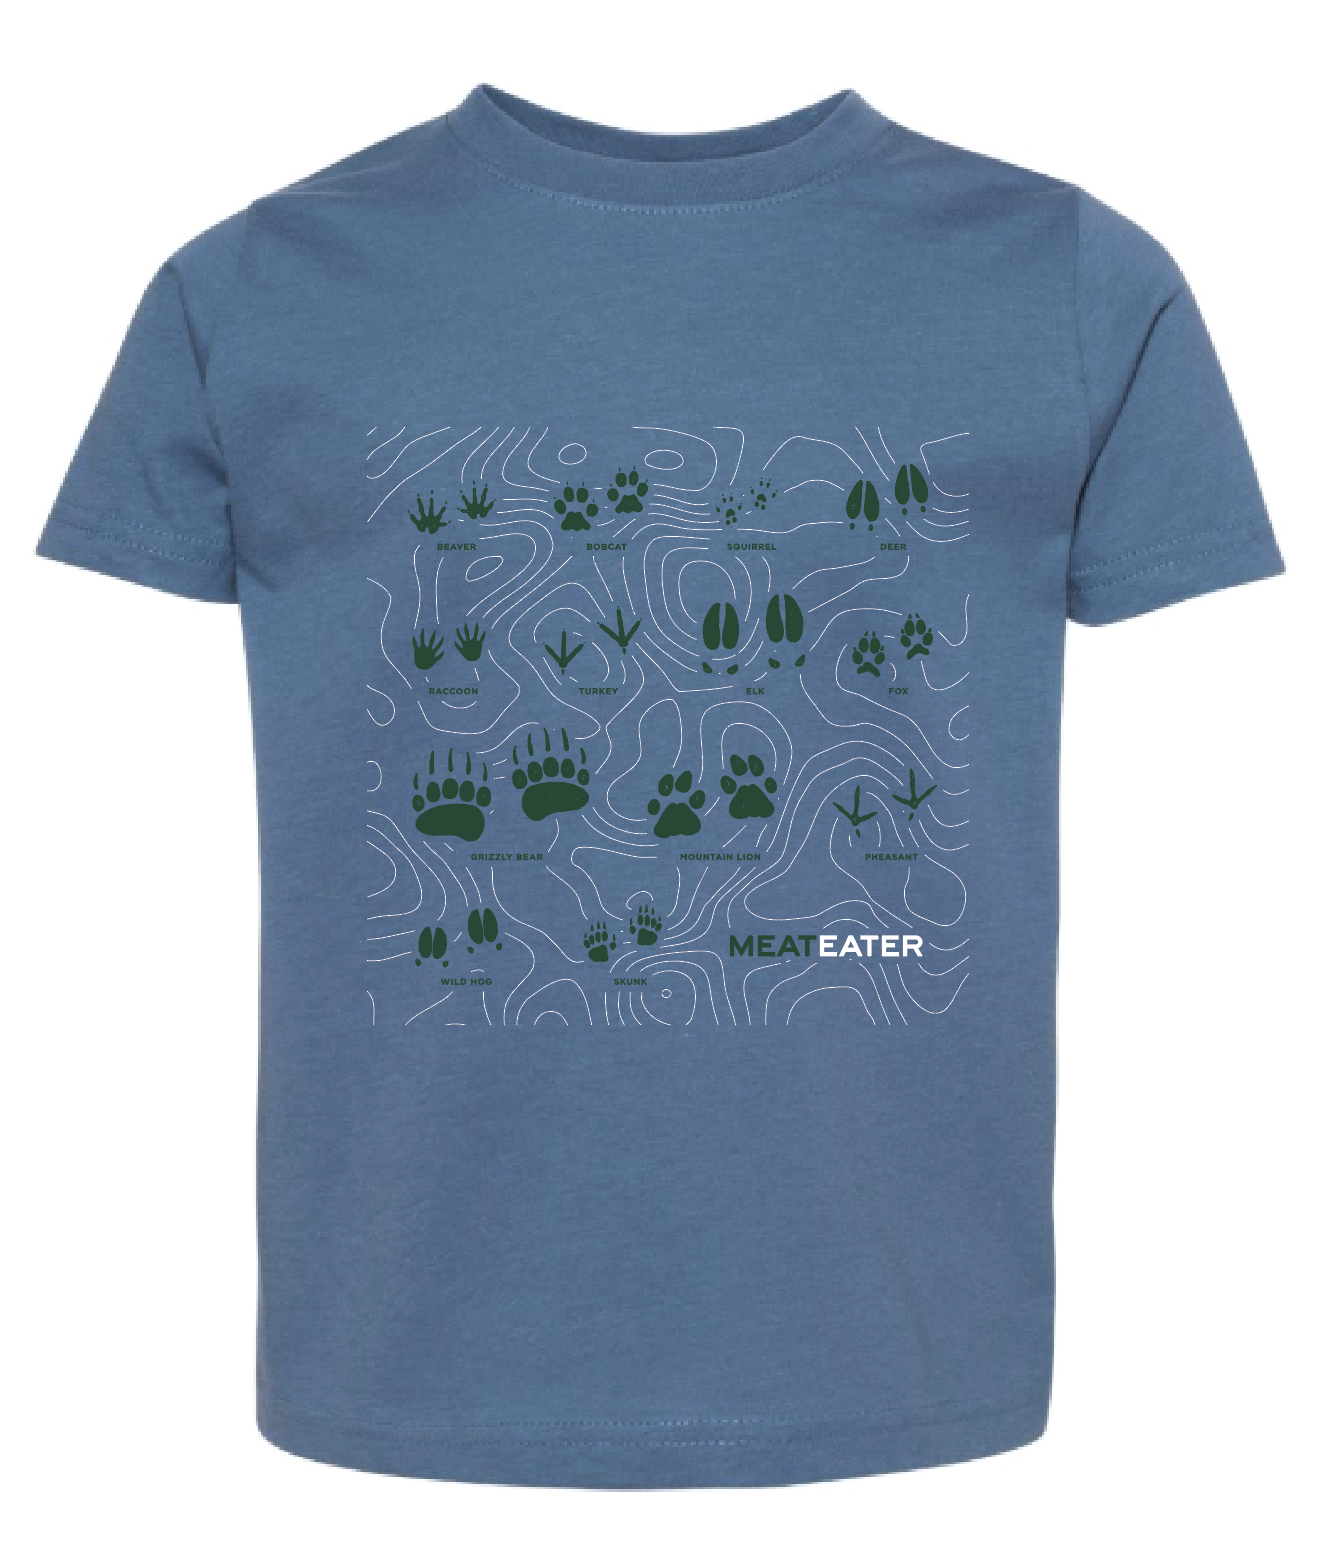 Youth Animal Tracks T-shirt